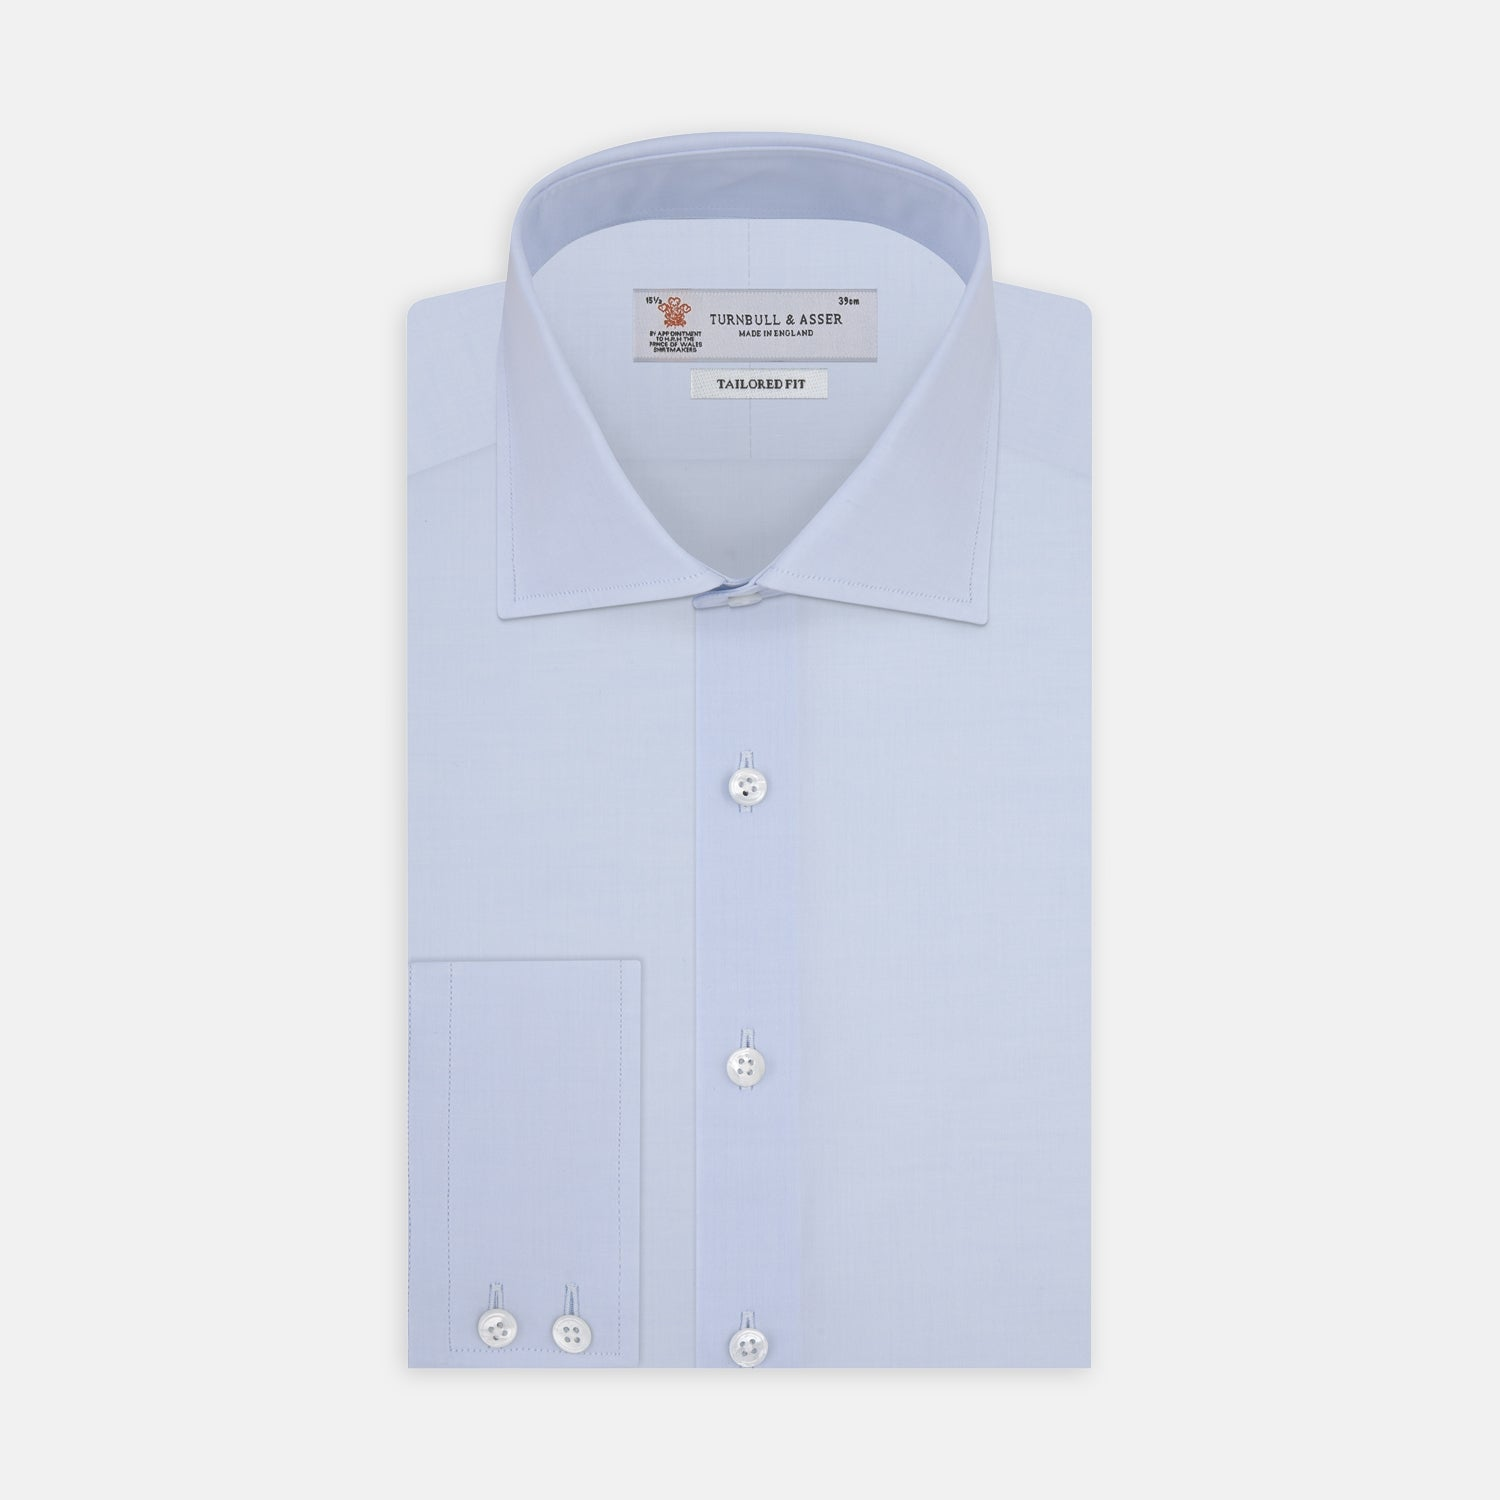 Tailored Fit Two-Fold 120 Light Blue Shirt with Kent Collar and 2-Button Cuffs